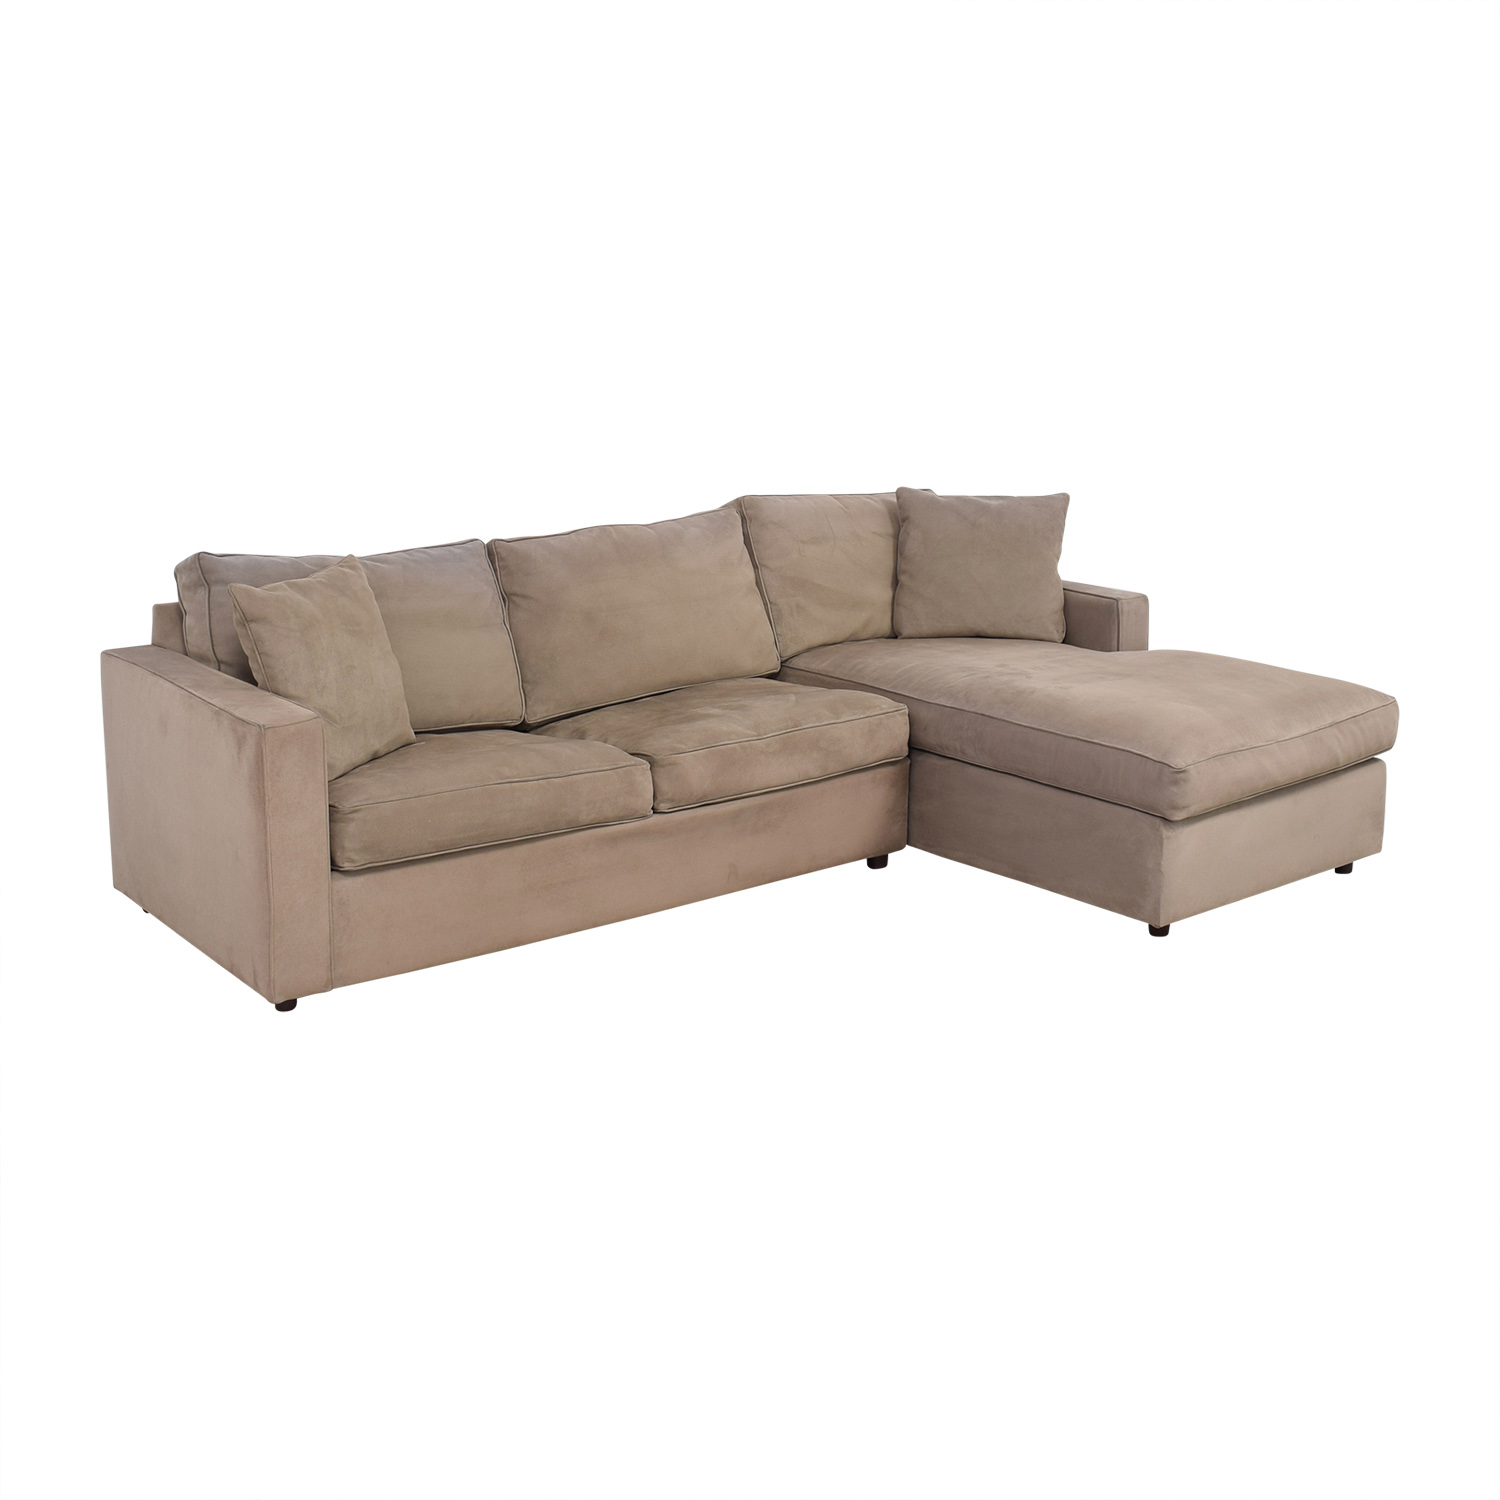 buy Room & Board Full Sleeper Sofa with Chaise Room & Board Sofas